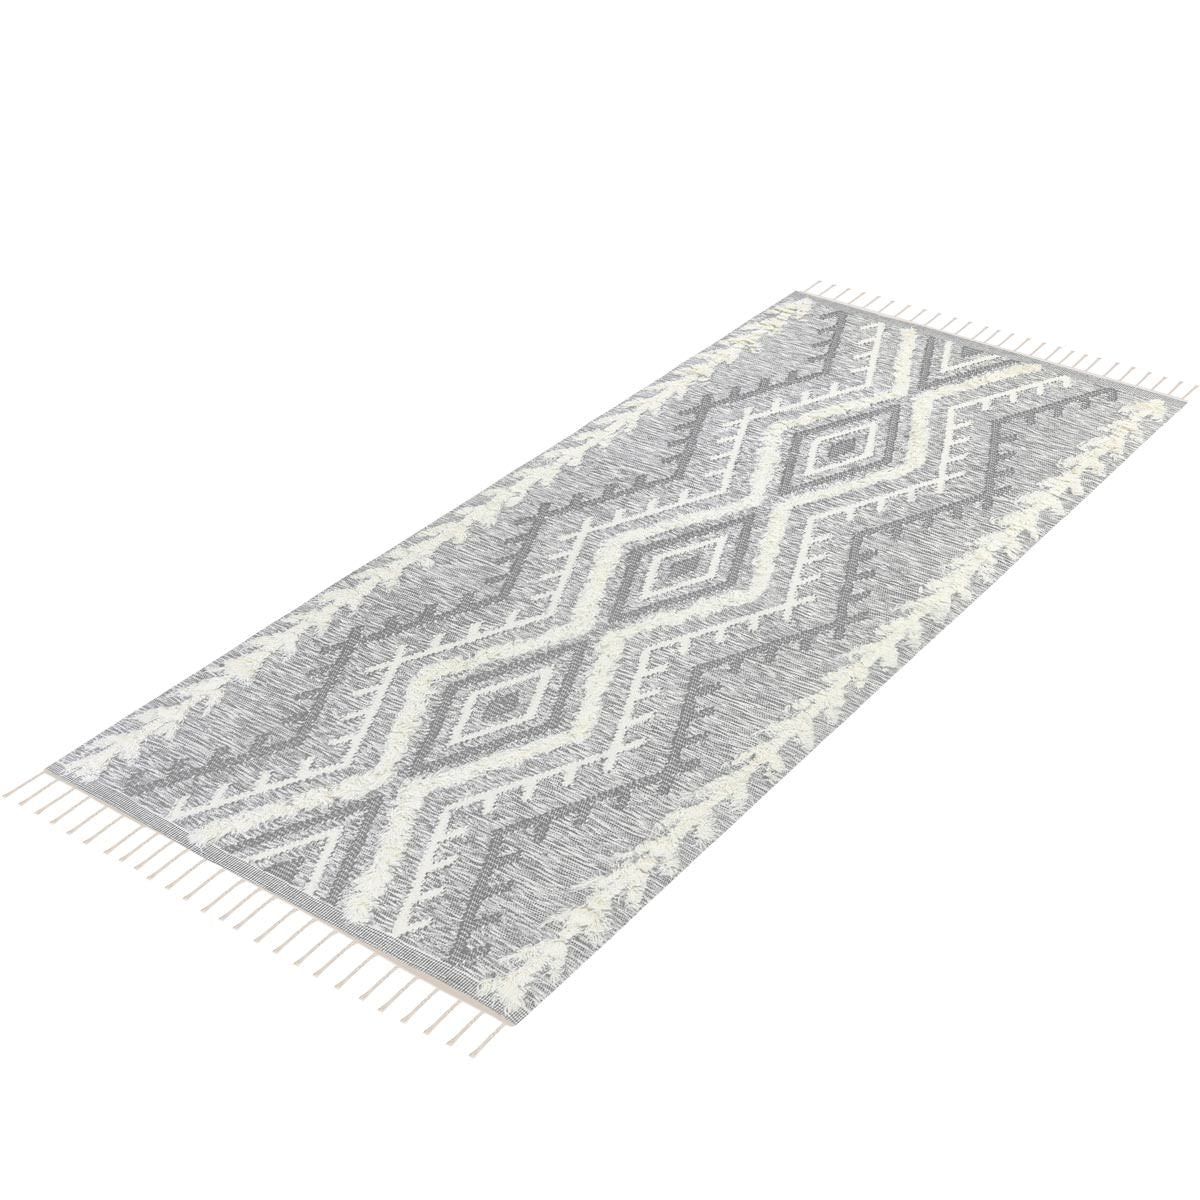 Tangier Rug 05 light grey Runner 8